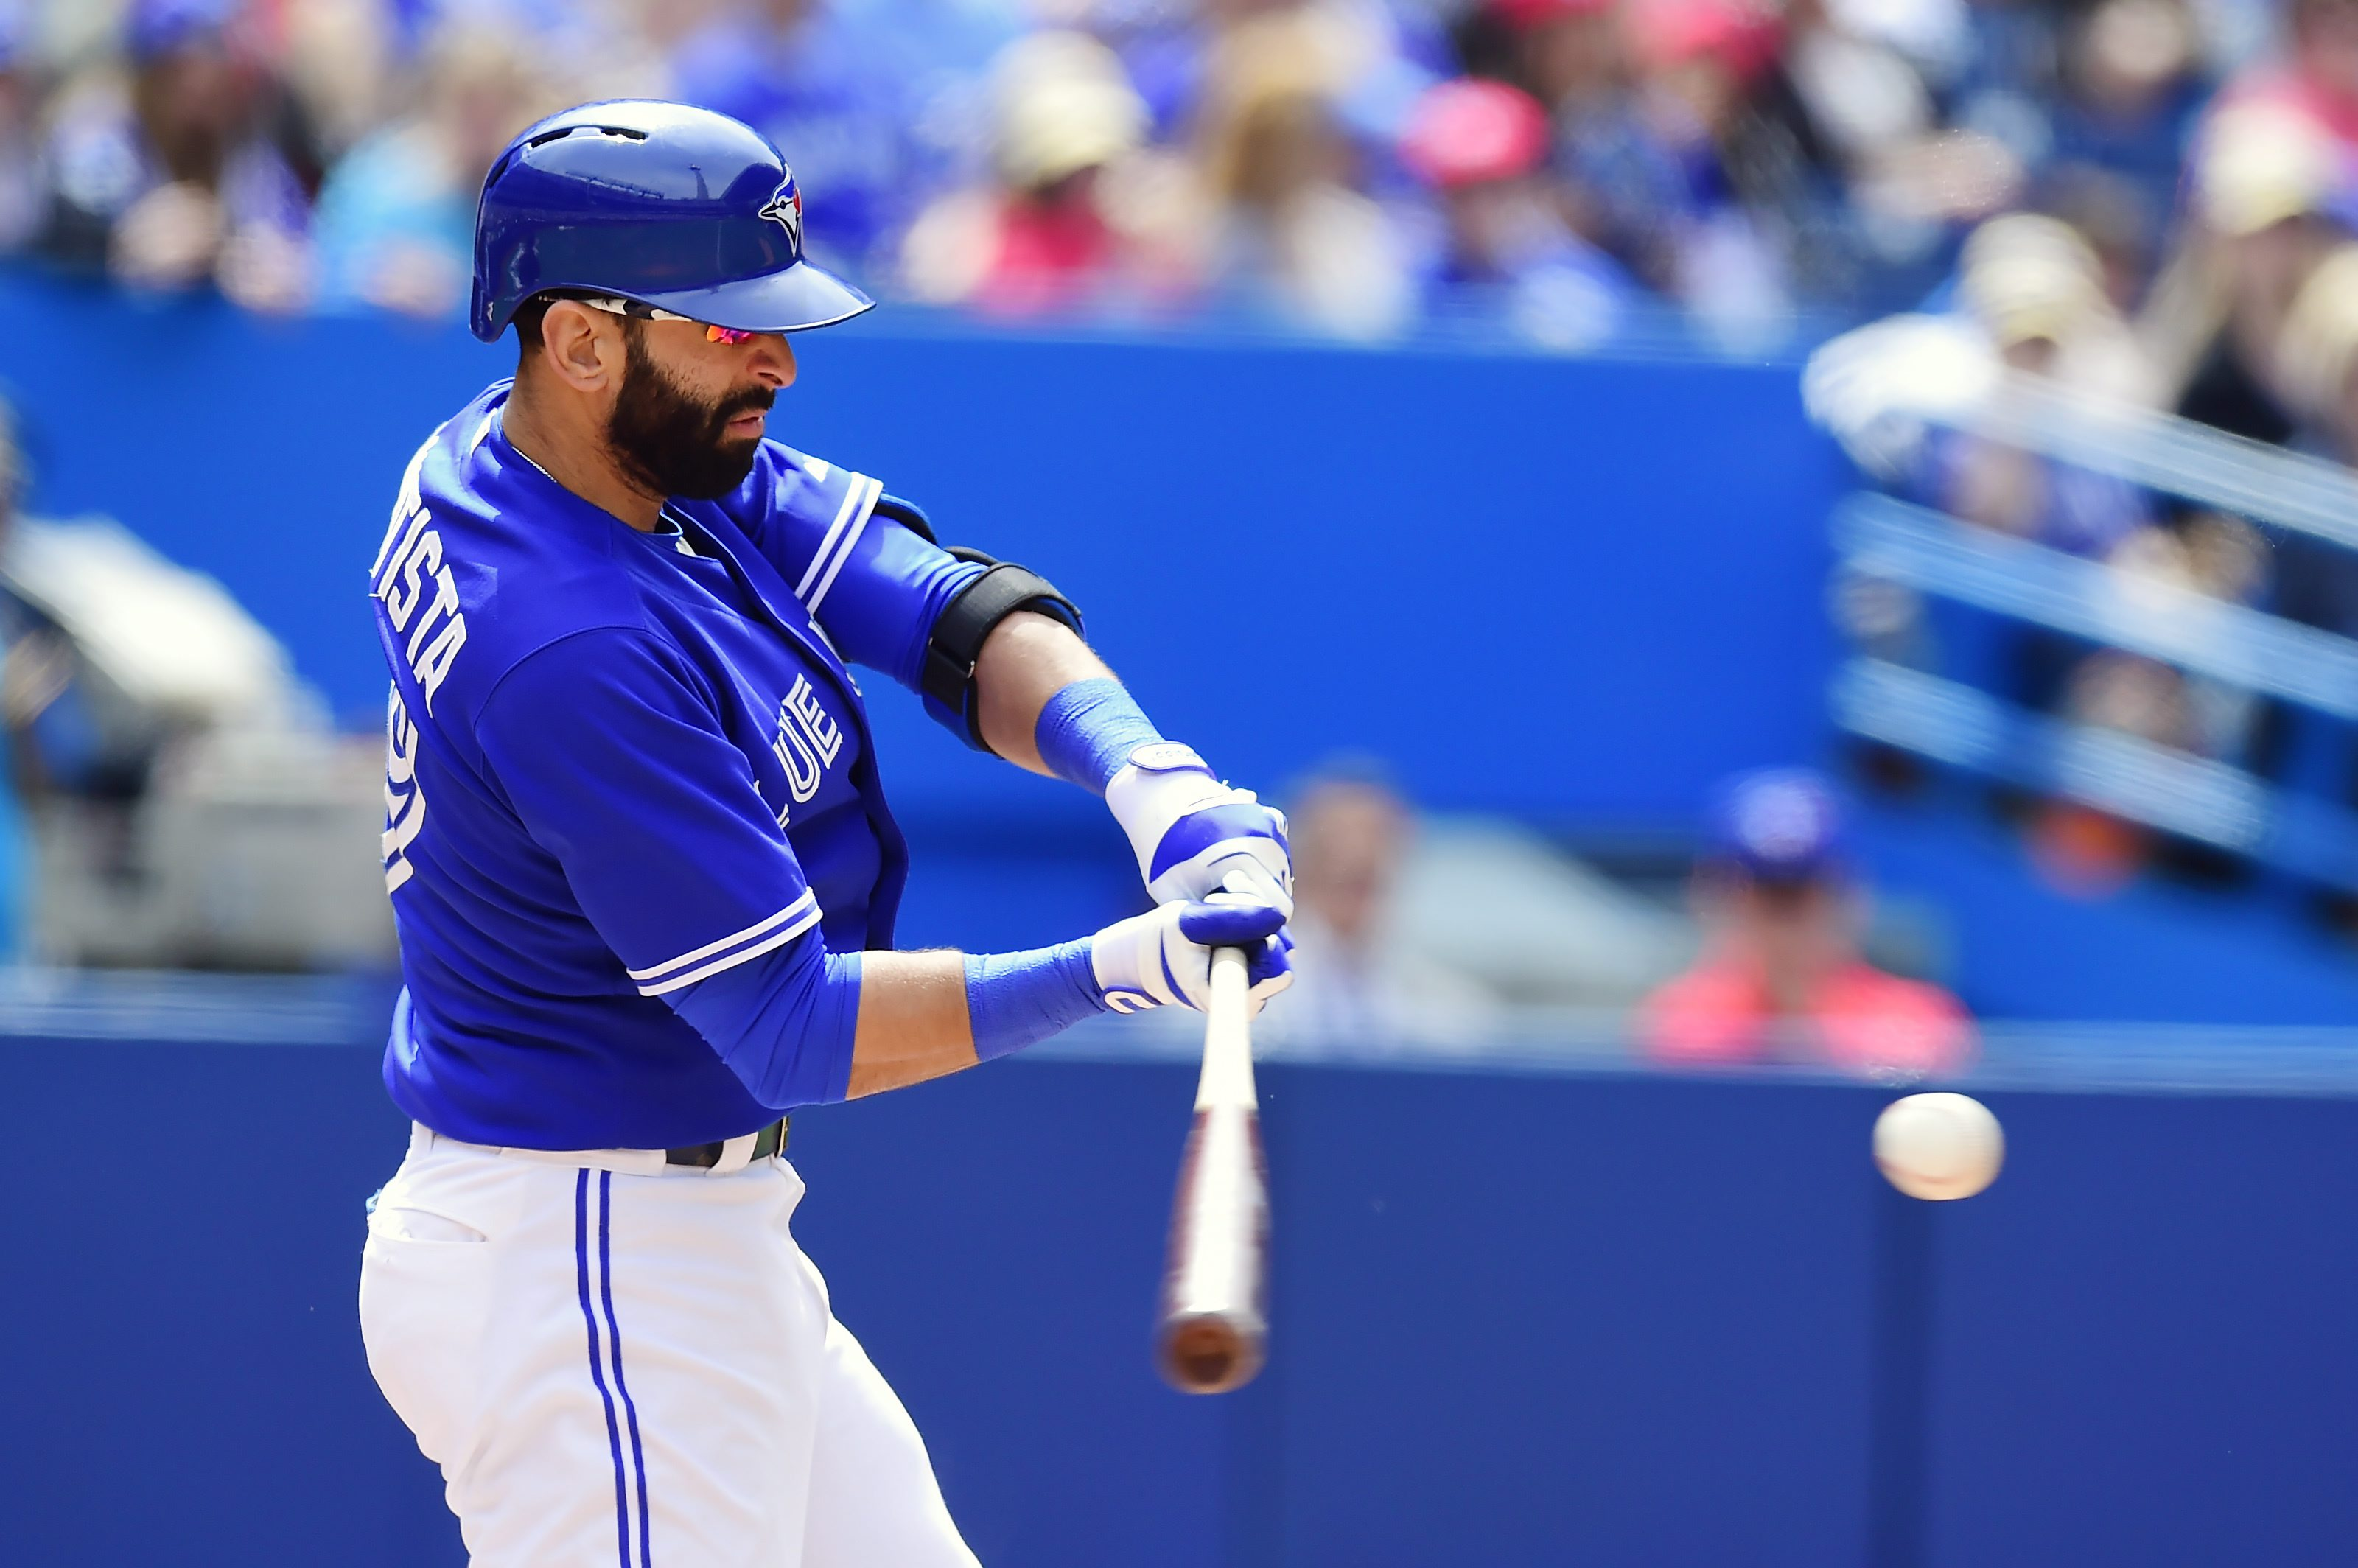 Toronto Blue Jays' Jose Bautista hits a home run during seventh-inning baseball game action against the Houston Astros on Sunday, June 7, 2015. (Frank Gunn/The Canadian Press via AP) MANDATORY CREDIT